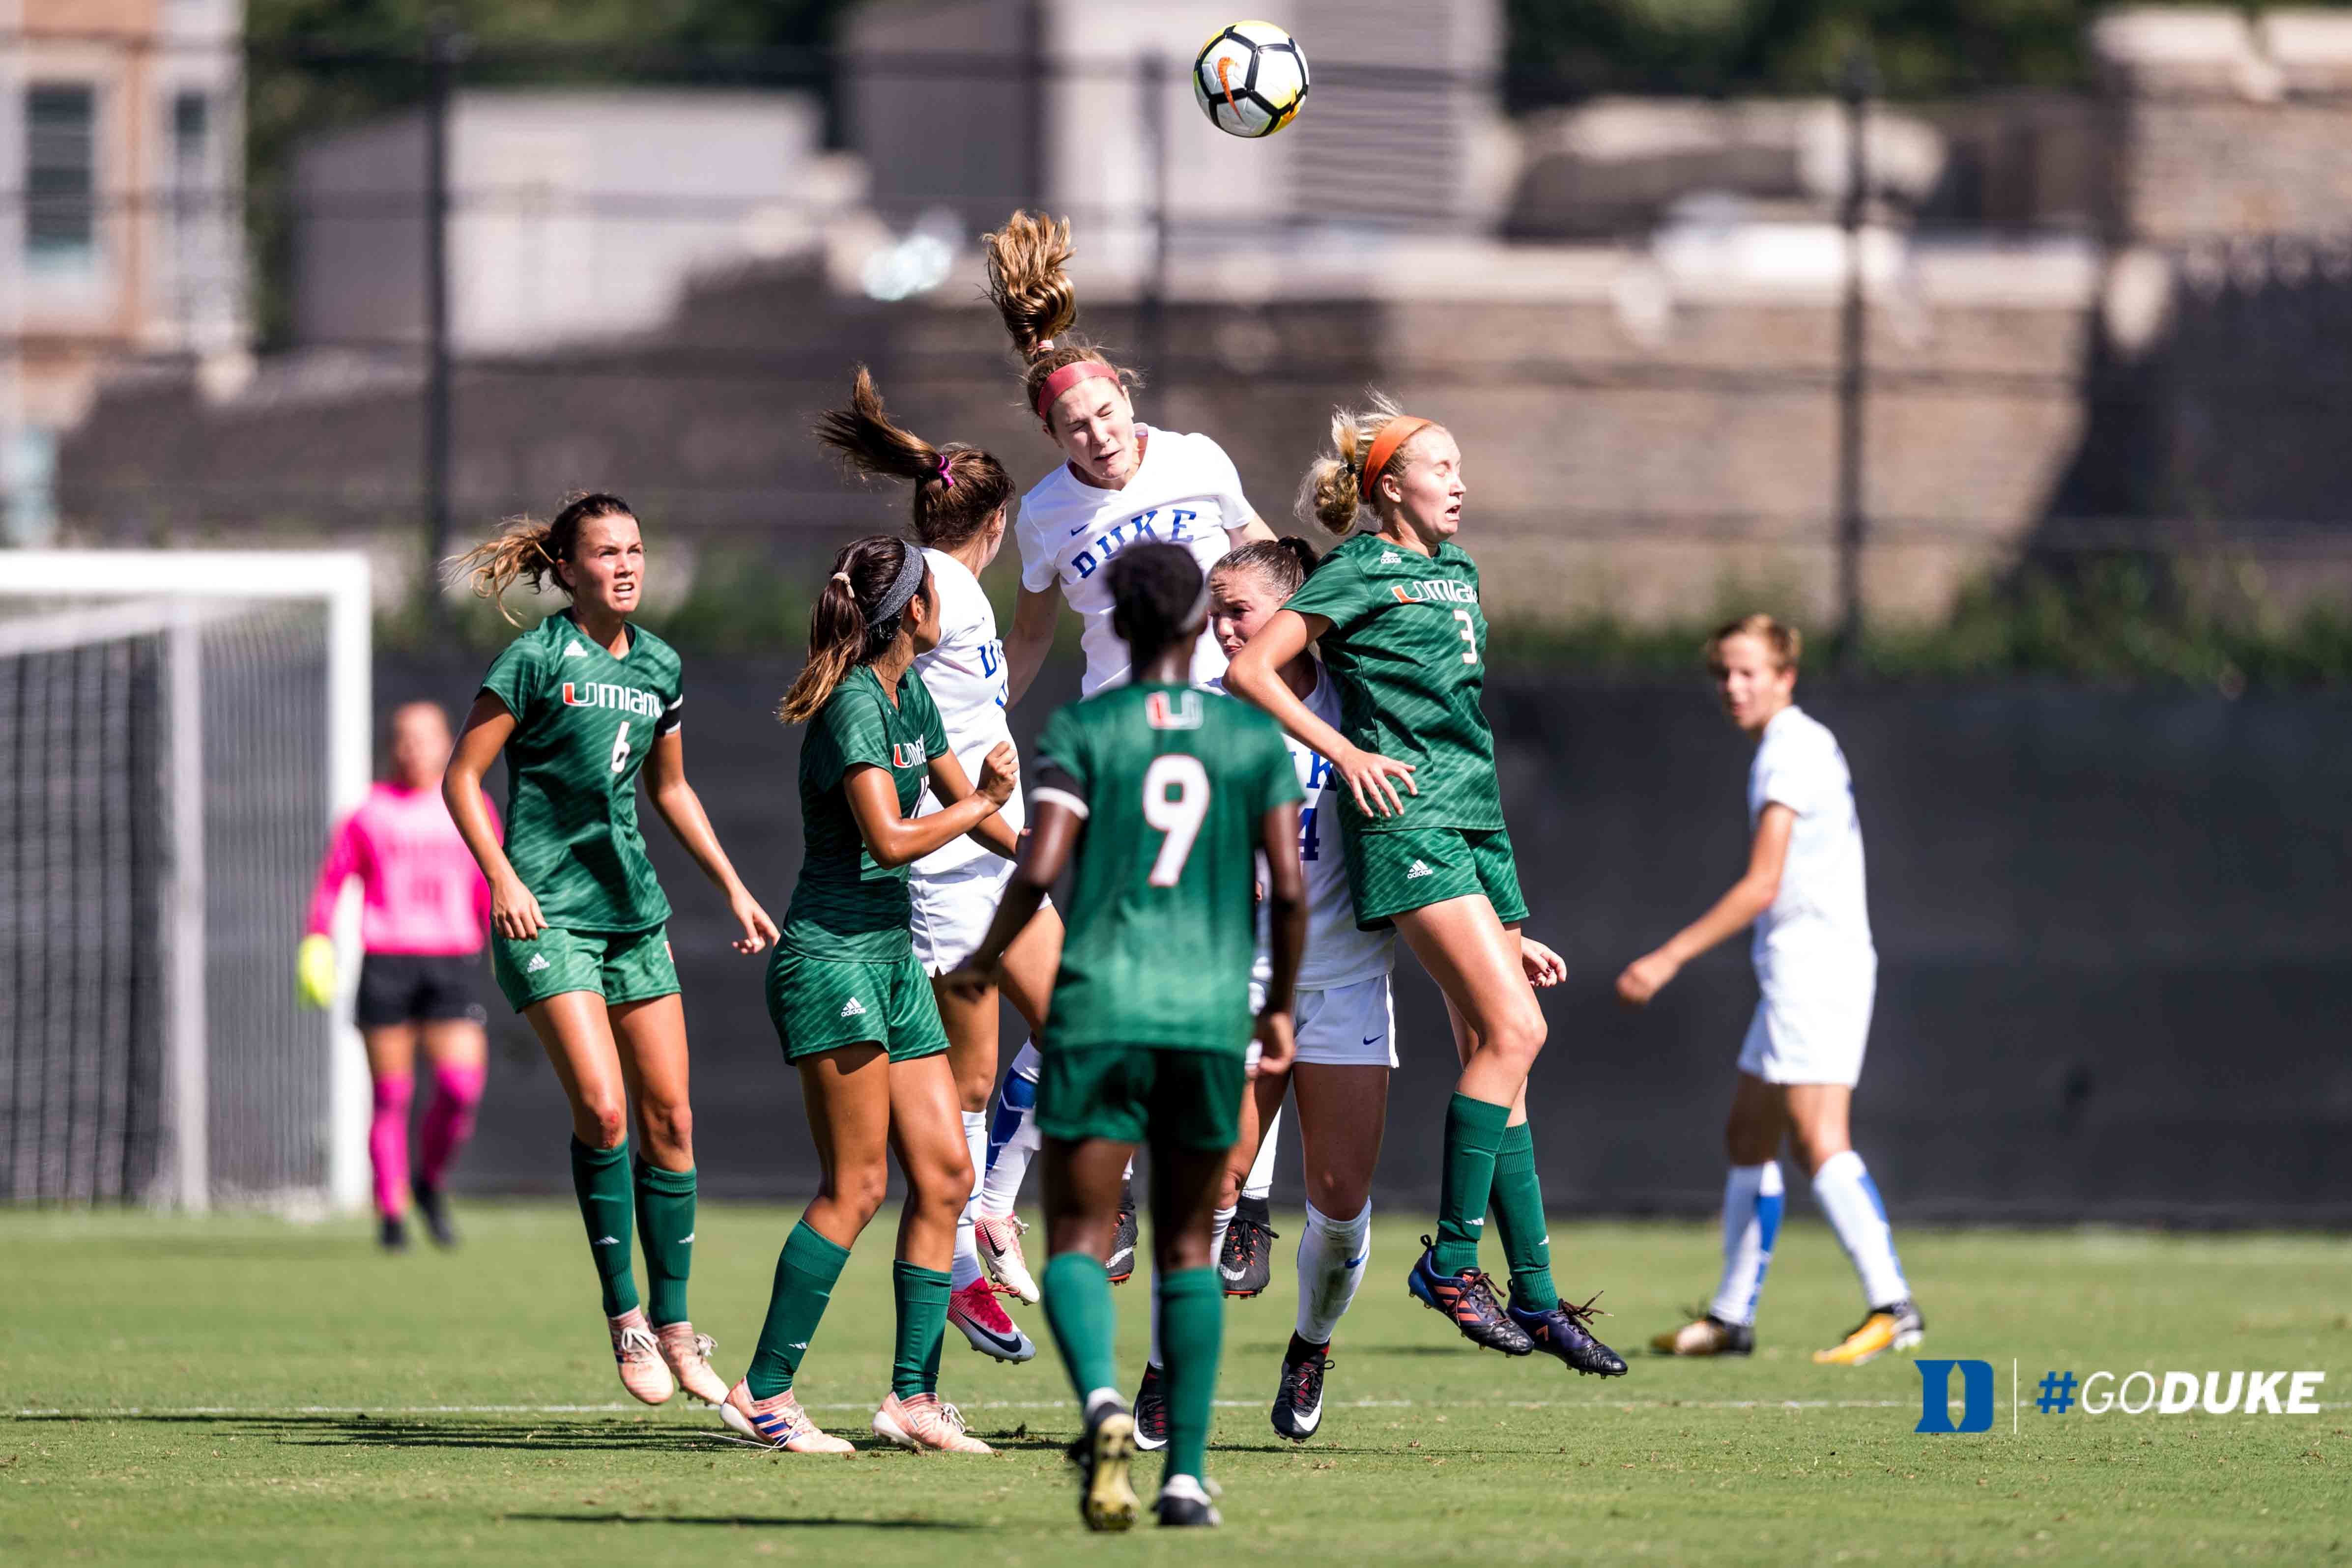 Malinda Allen going up for a header in a crowd of players.